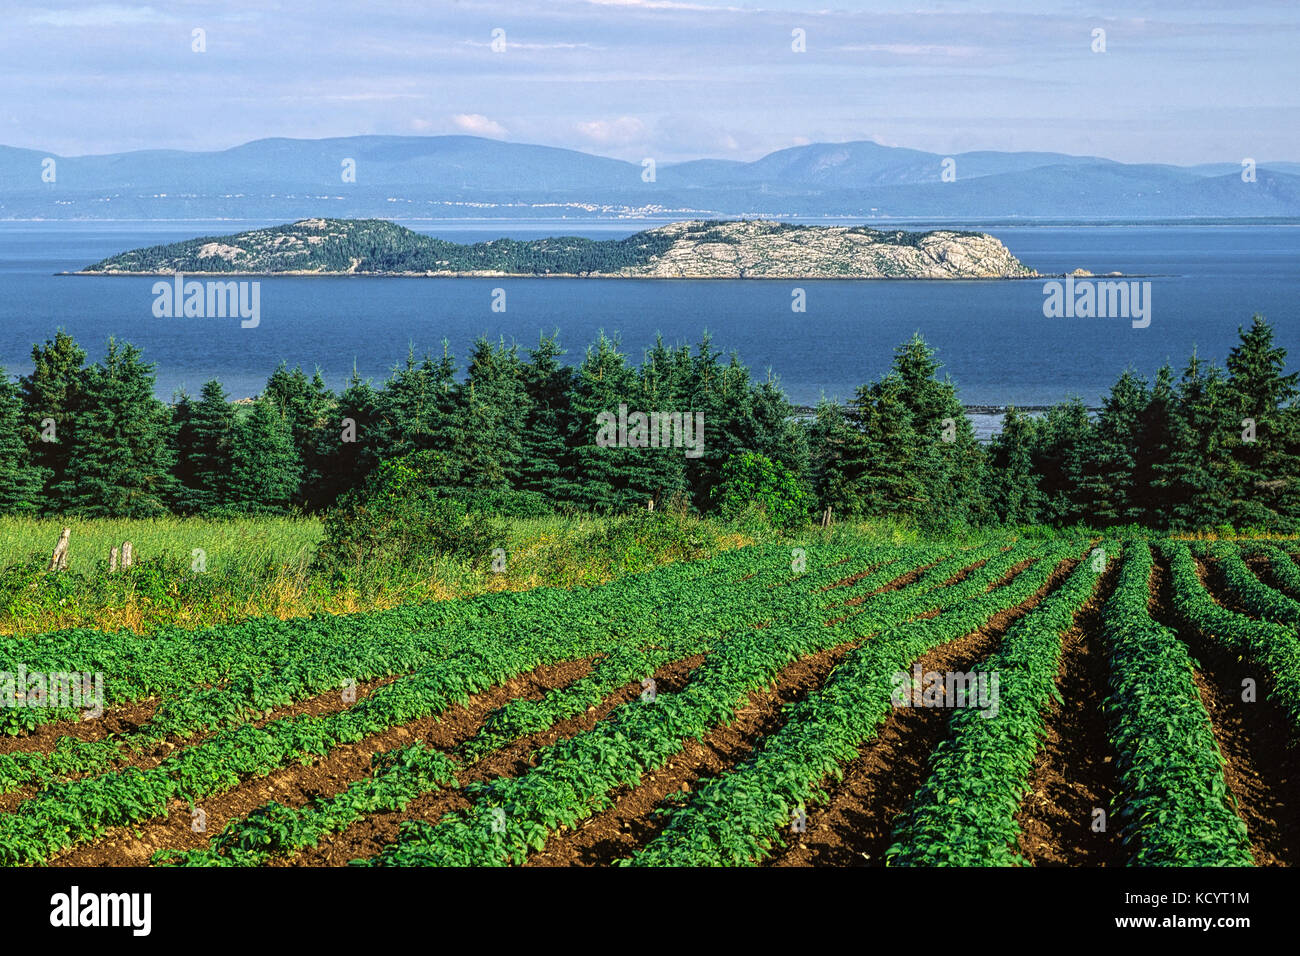 View from a potatoes field toward Pélerins Islands and the north shore of the Saint-Lawrence river, Cacouna, - Stock Image